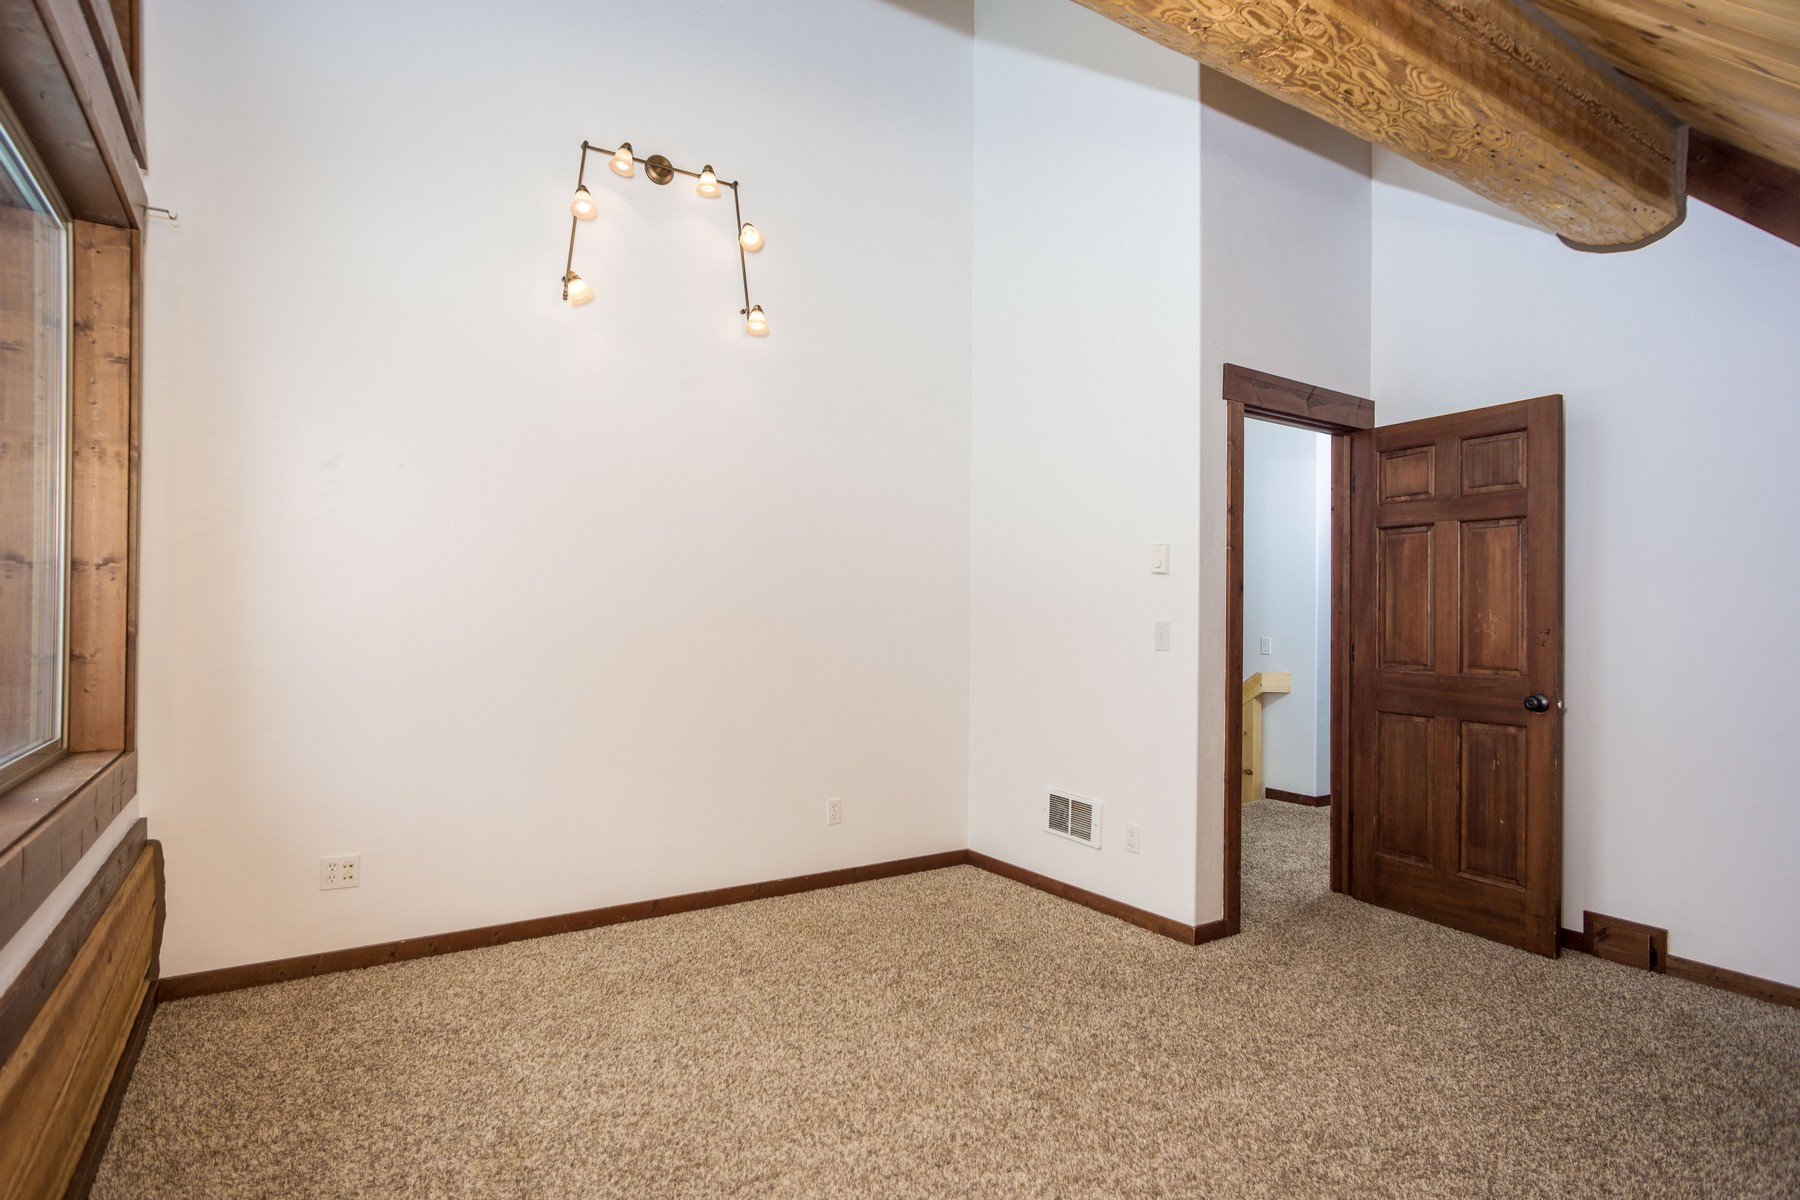 Additional photo for property listing at 3977 Star Meadow Rd , Whitefish, MT 59937 3977  Star Meadows Rd Whitefish, Montana 59937 United States